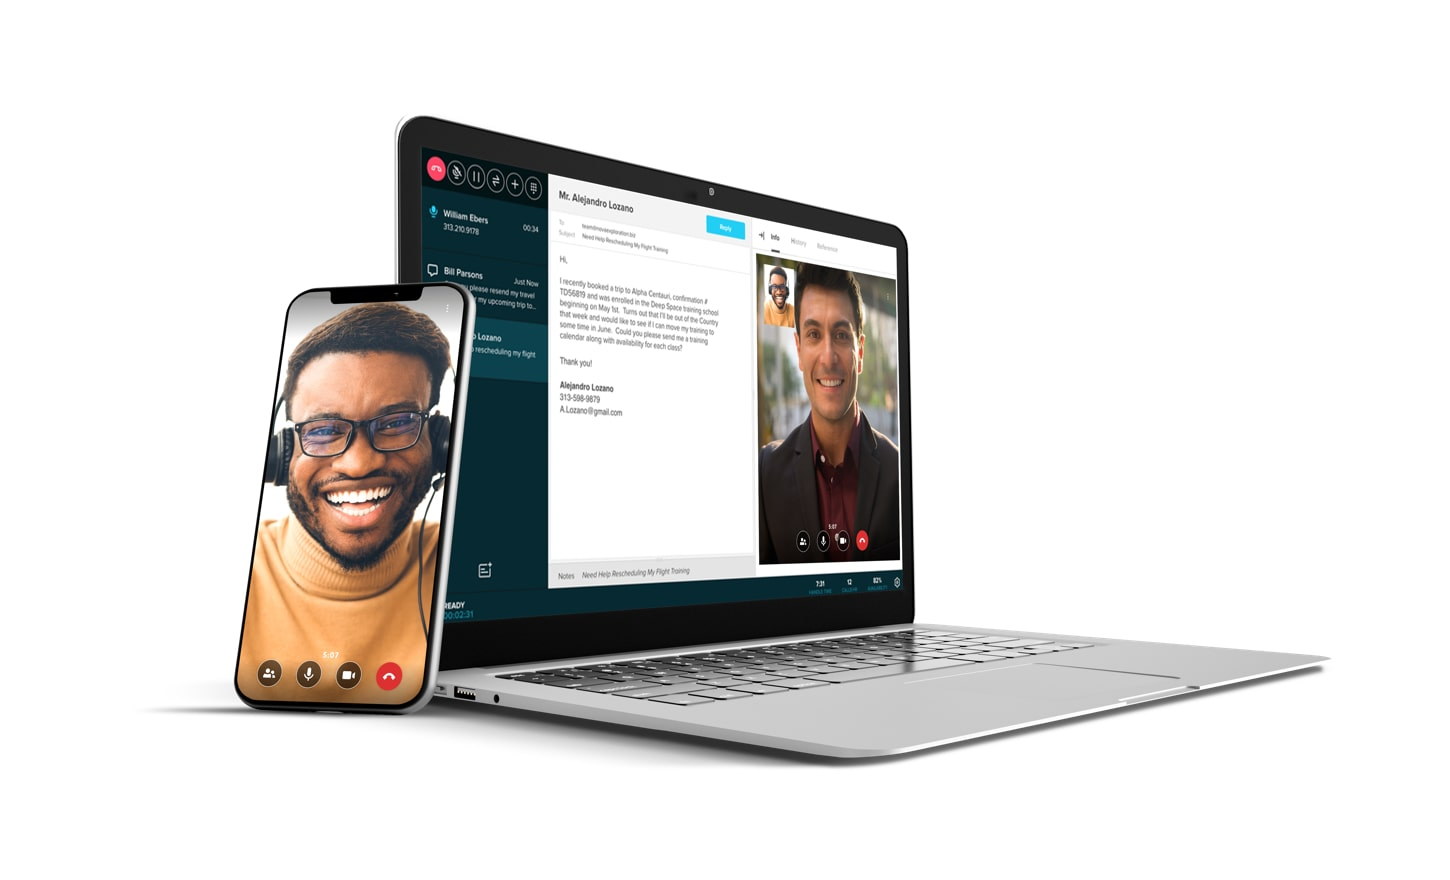 Lifesize CxEngage is shown with video enhanced features for both mobile and desktop